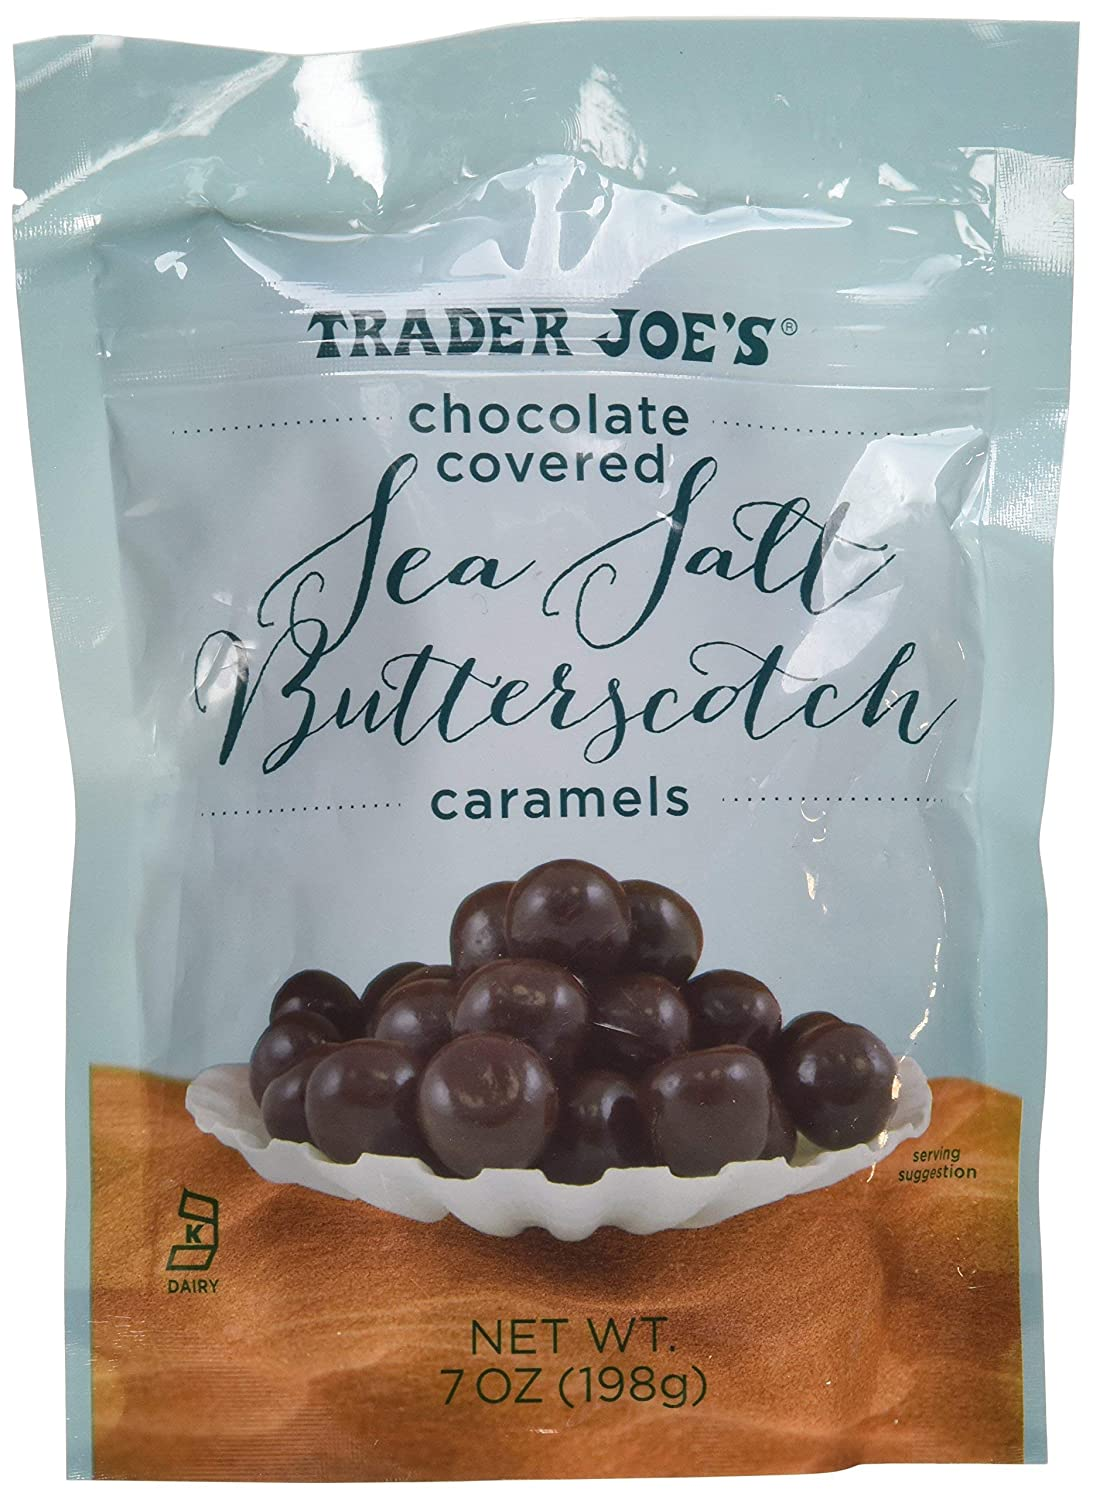 Trader Joe's Chocolate Covered Sea 4 years warranty Sales for sale Butterscotch 7o Caramels Salt